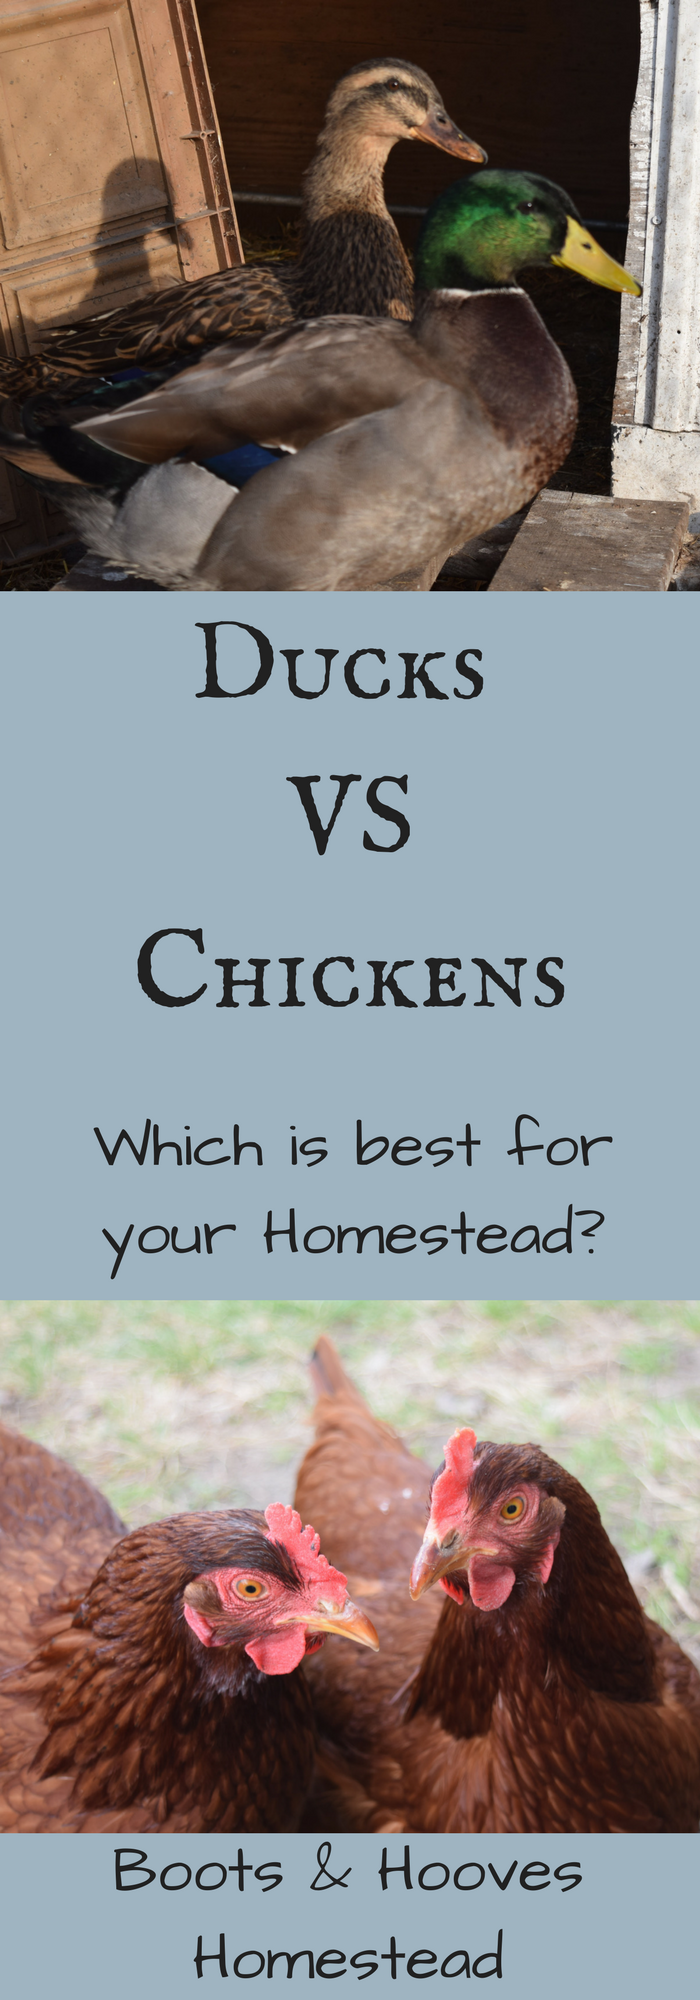 ducks vs chickens what are the differences homesteads farming